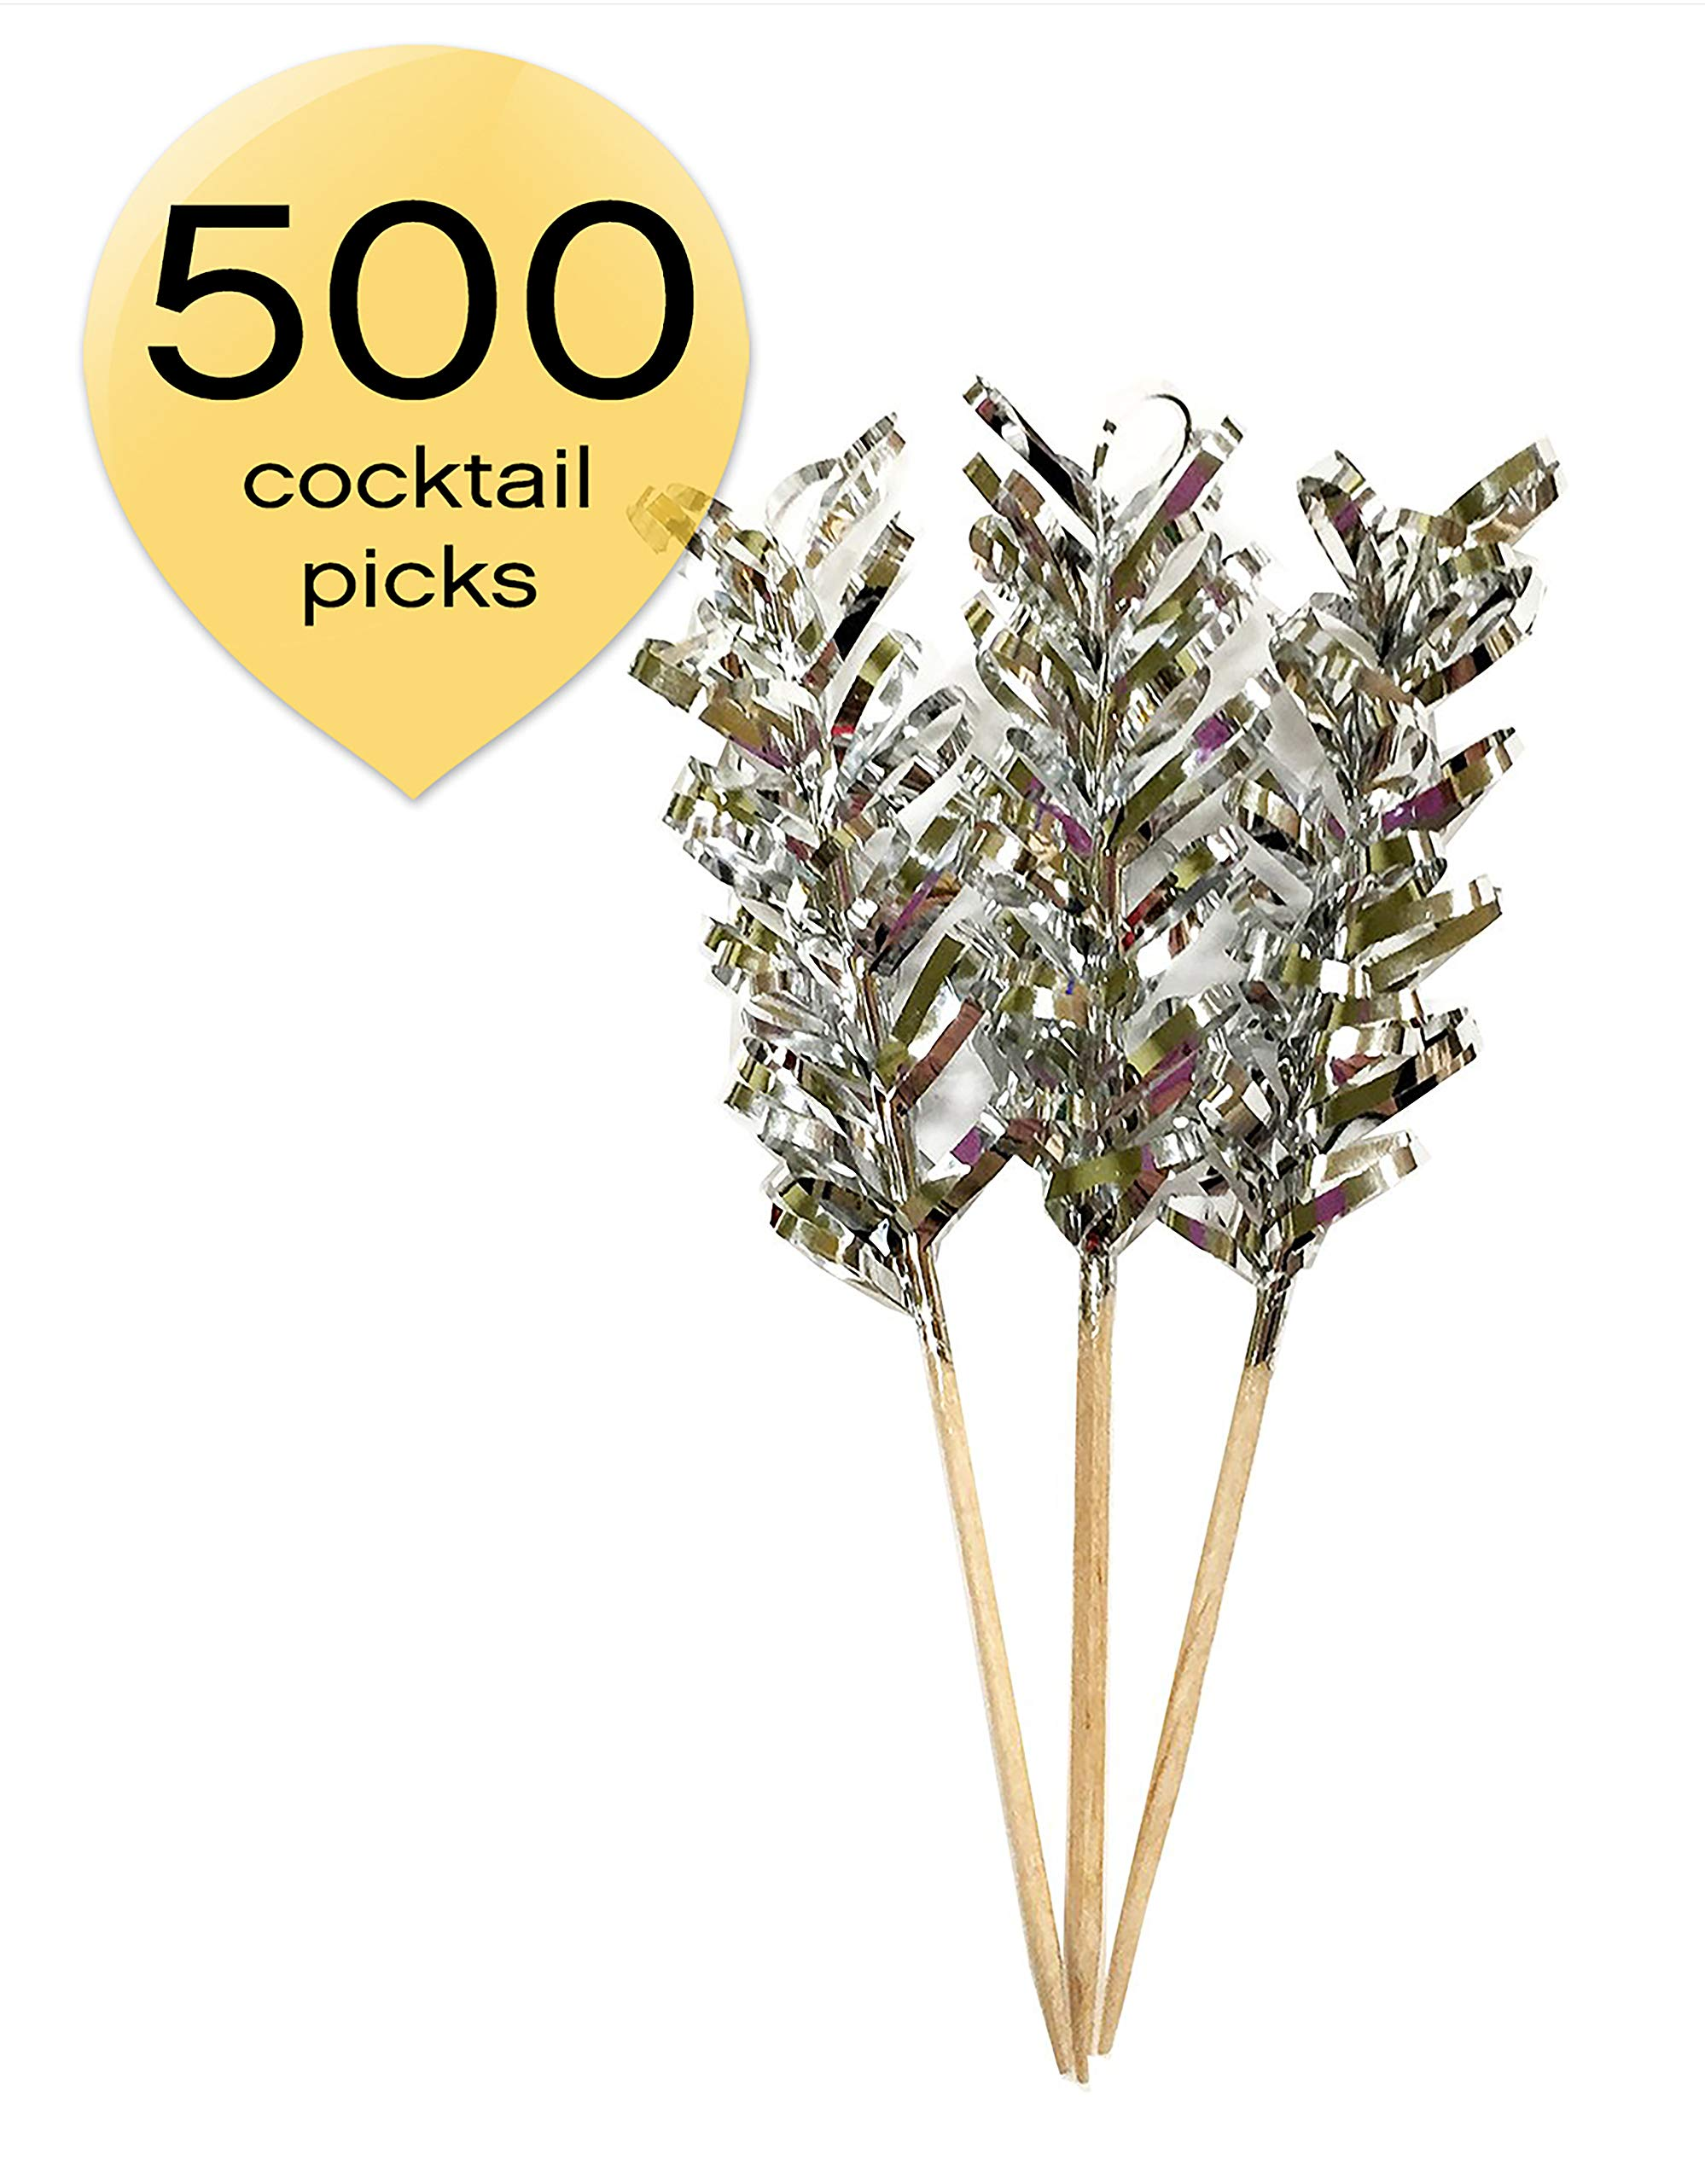 Simply Baked FTP-103C Cocktail Pick, 500 Pack, Silver